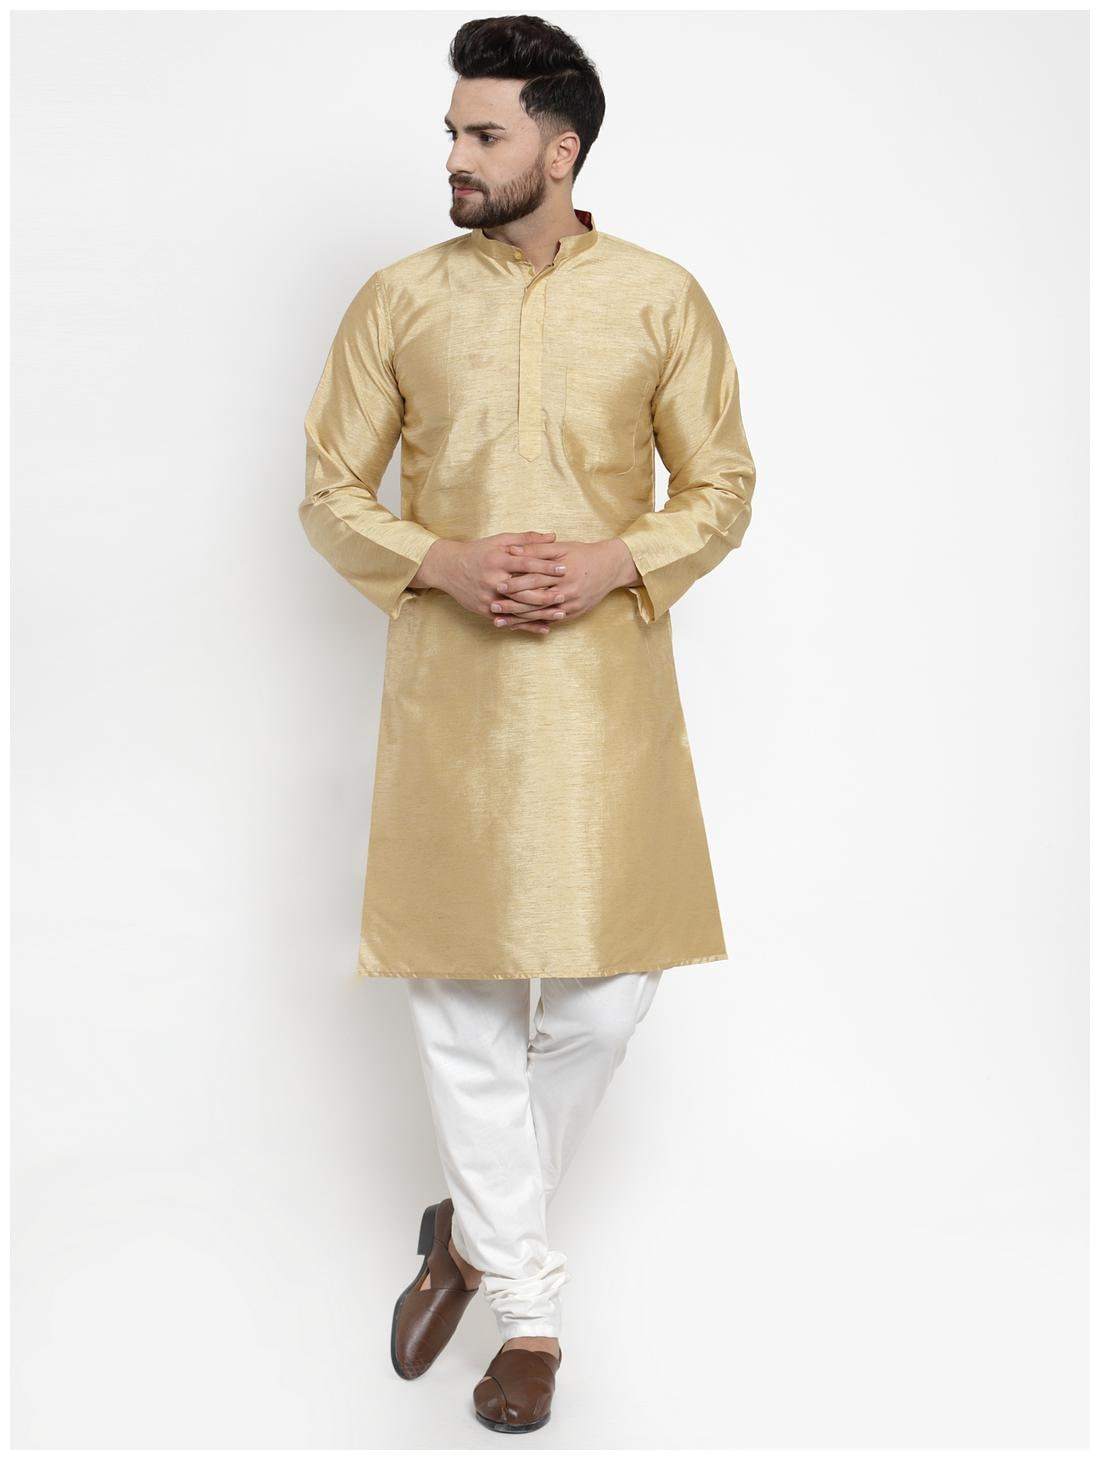 https://assetscdn1.paytm.com/images/catalog/product/C/CM/CMPLXAPPNEUDIS-MEN-DDHRO44707BB9572BD/1582097702545_0.jpg